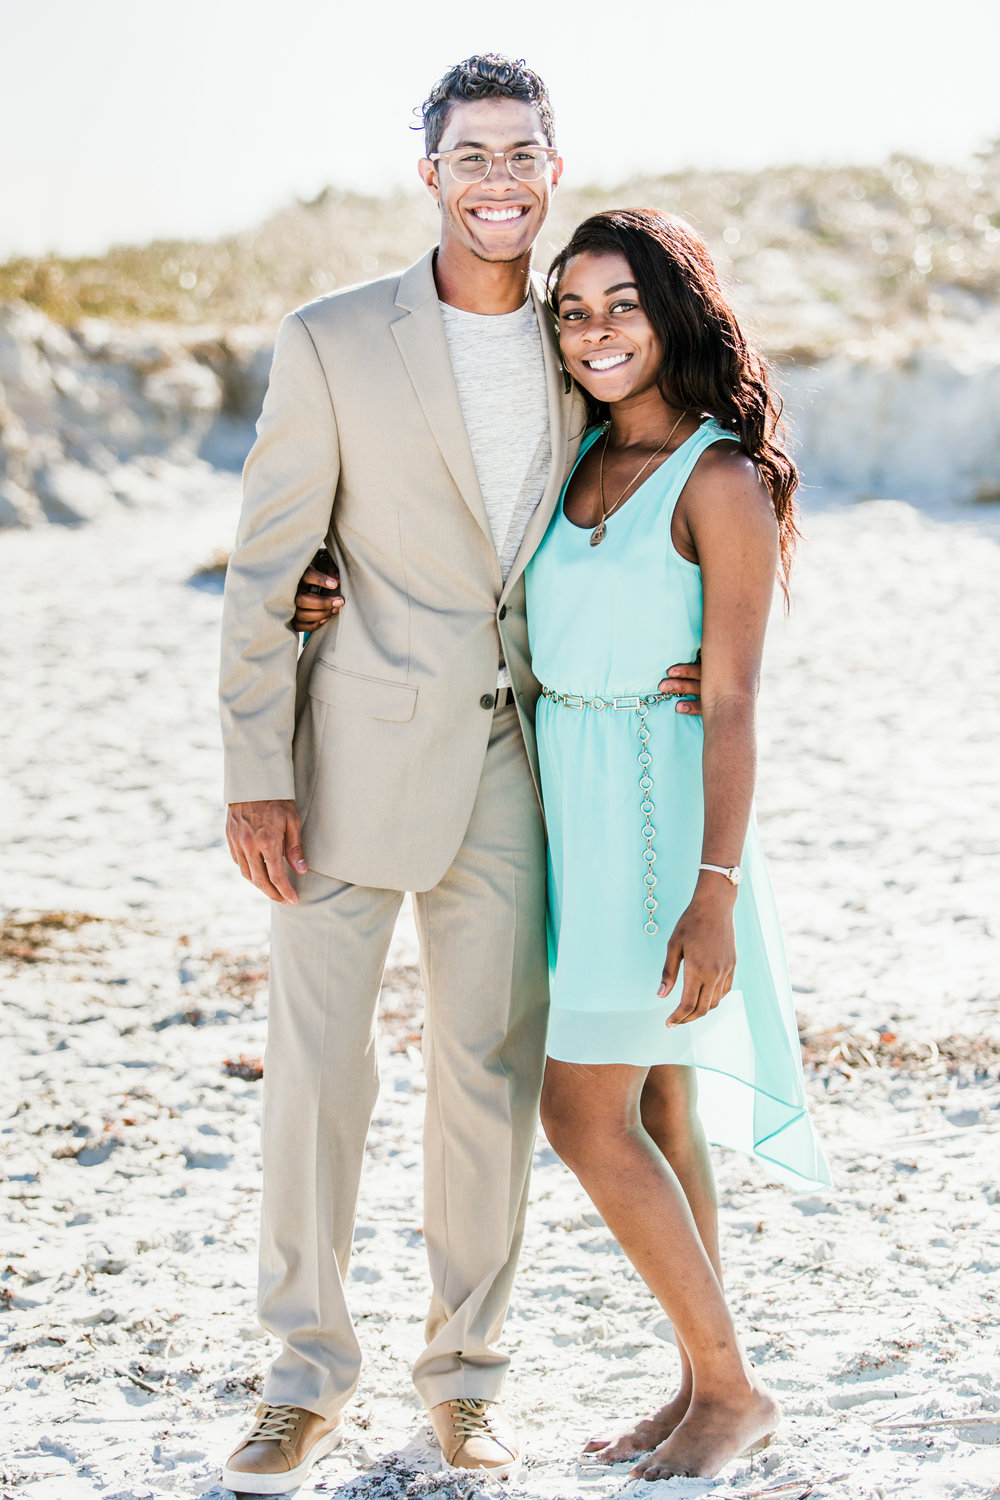 Violets & Seastars- November Ponce Inlet Wedding - Suzette & Dwight 26.jpg